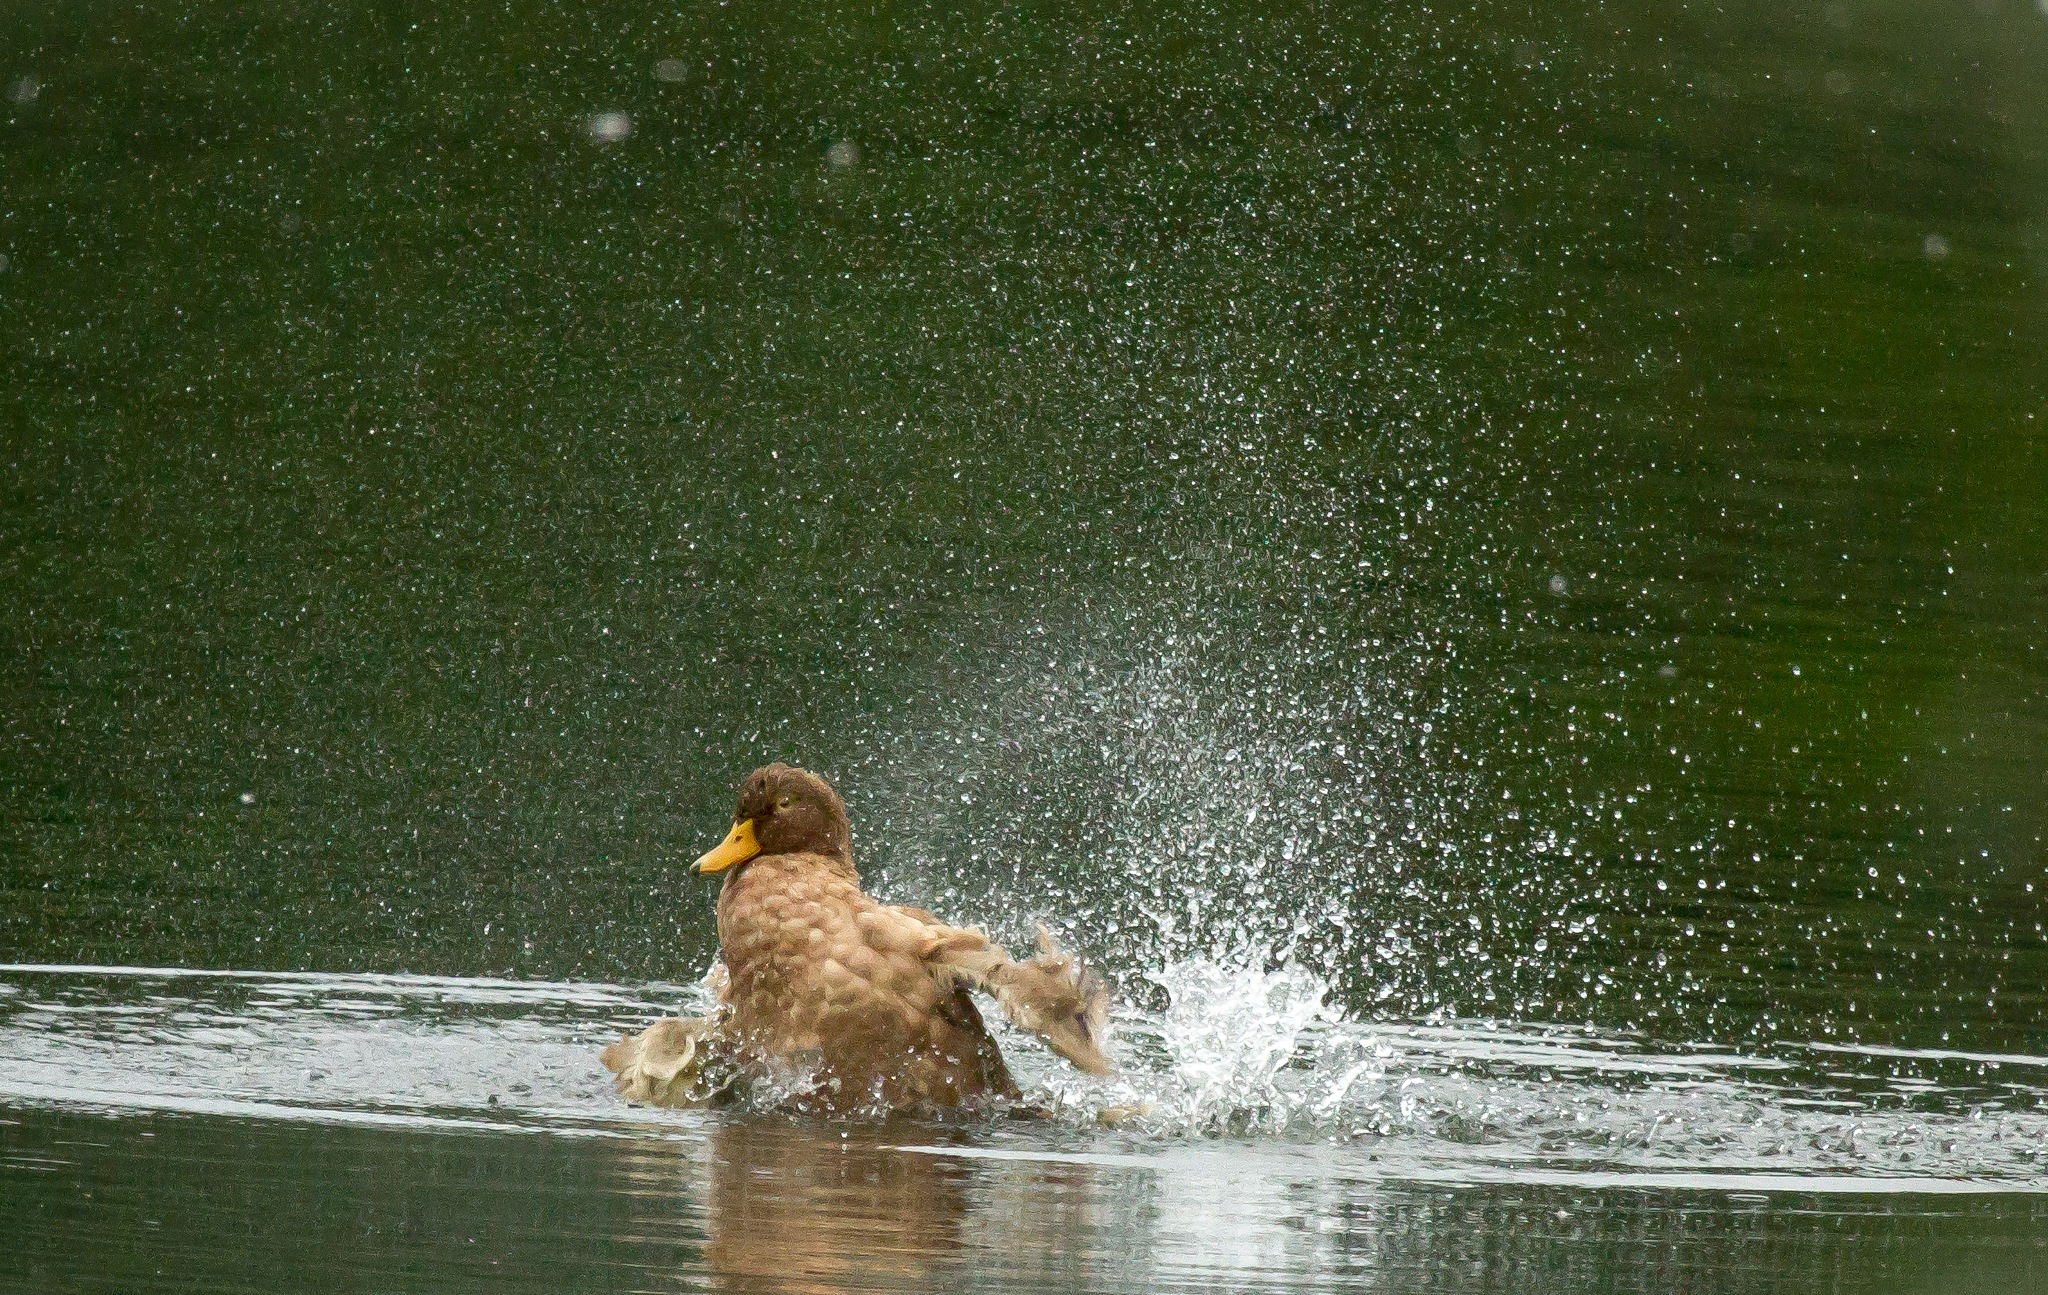 Taking a shower by Andrew Walpole